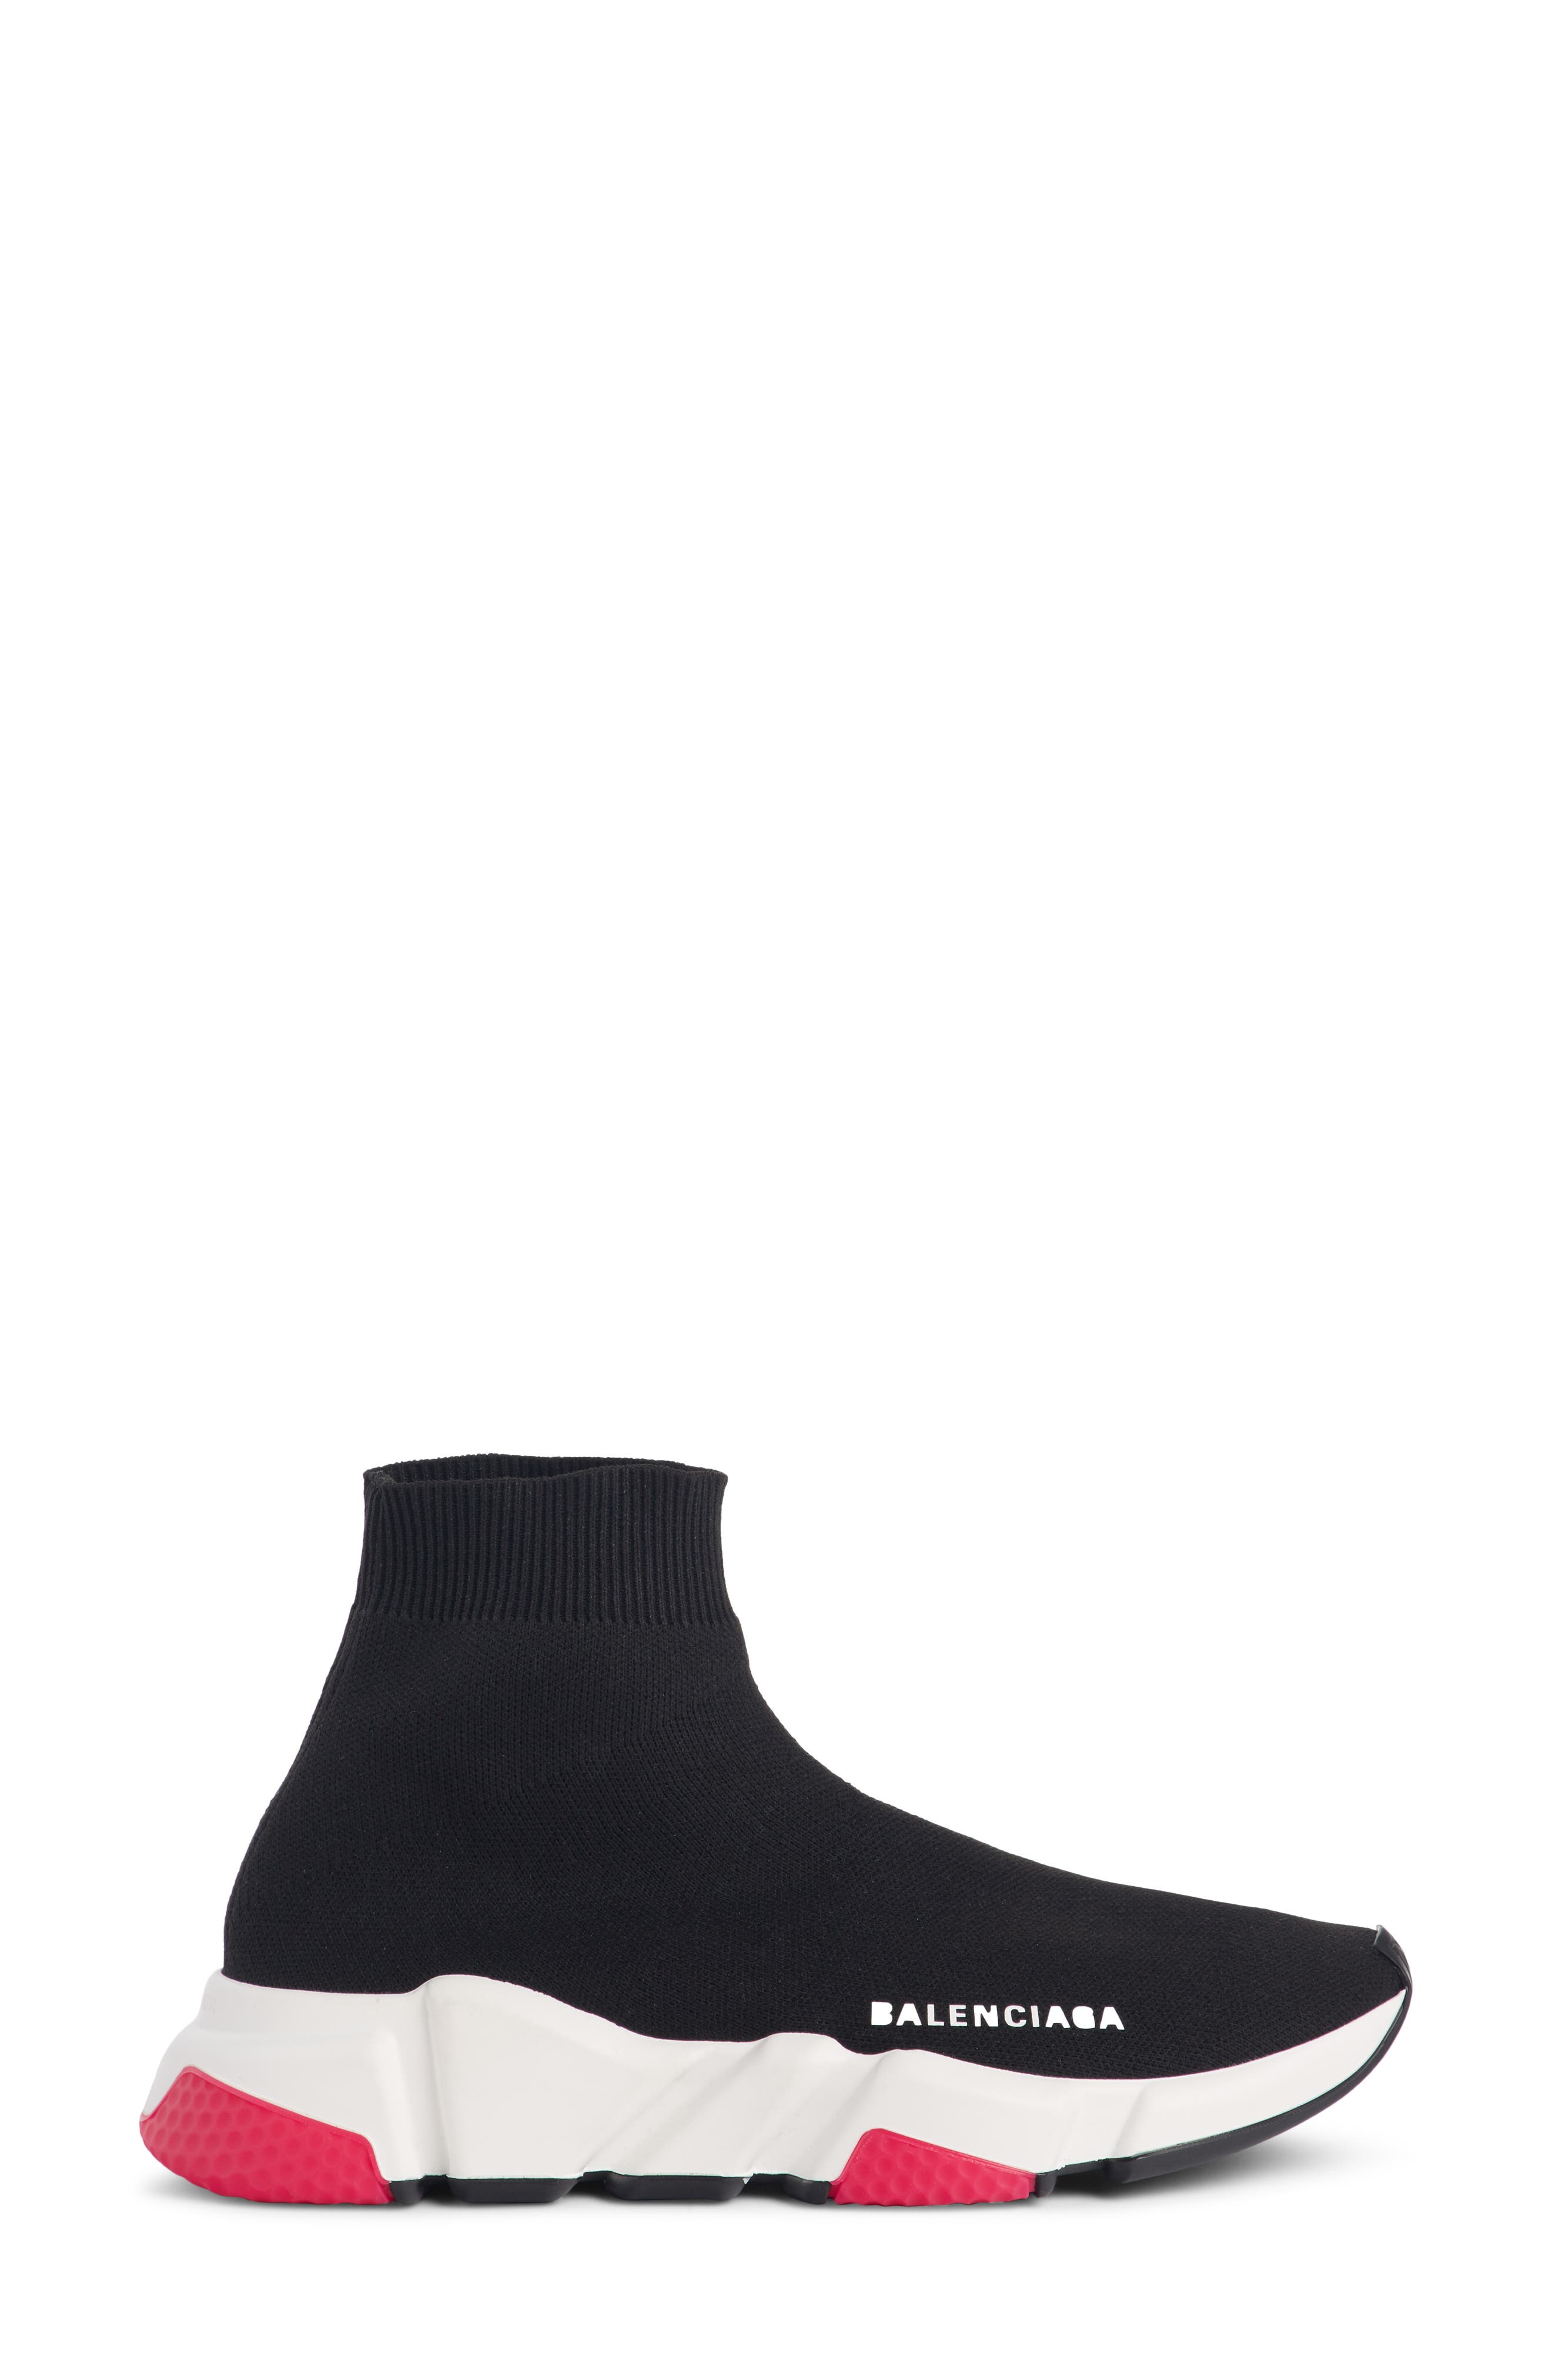 BALENCIAGA,                             Mid Speed Trainer Sock Sneaker,                             Alternate thumbnail 3, color,                             001